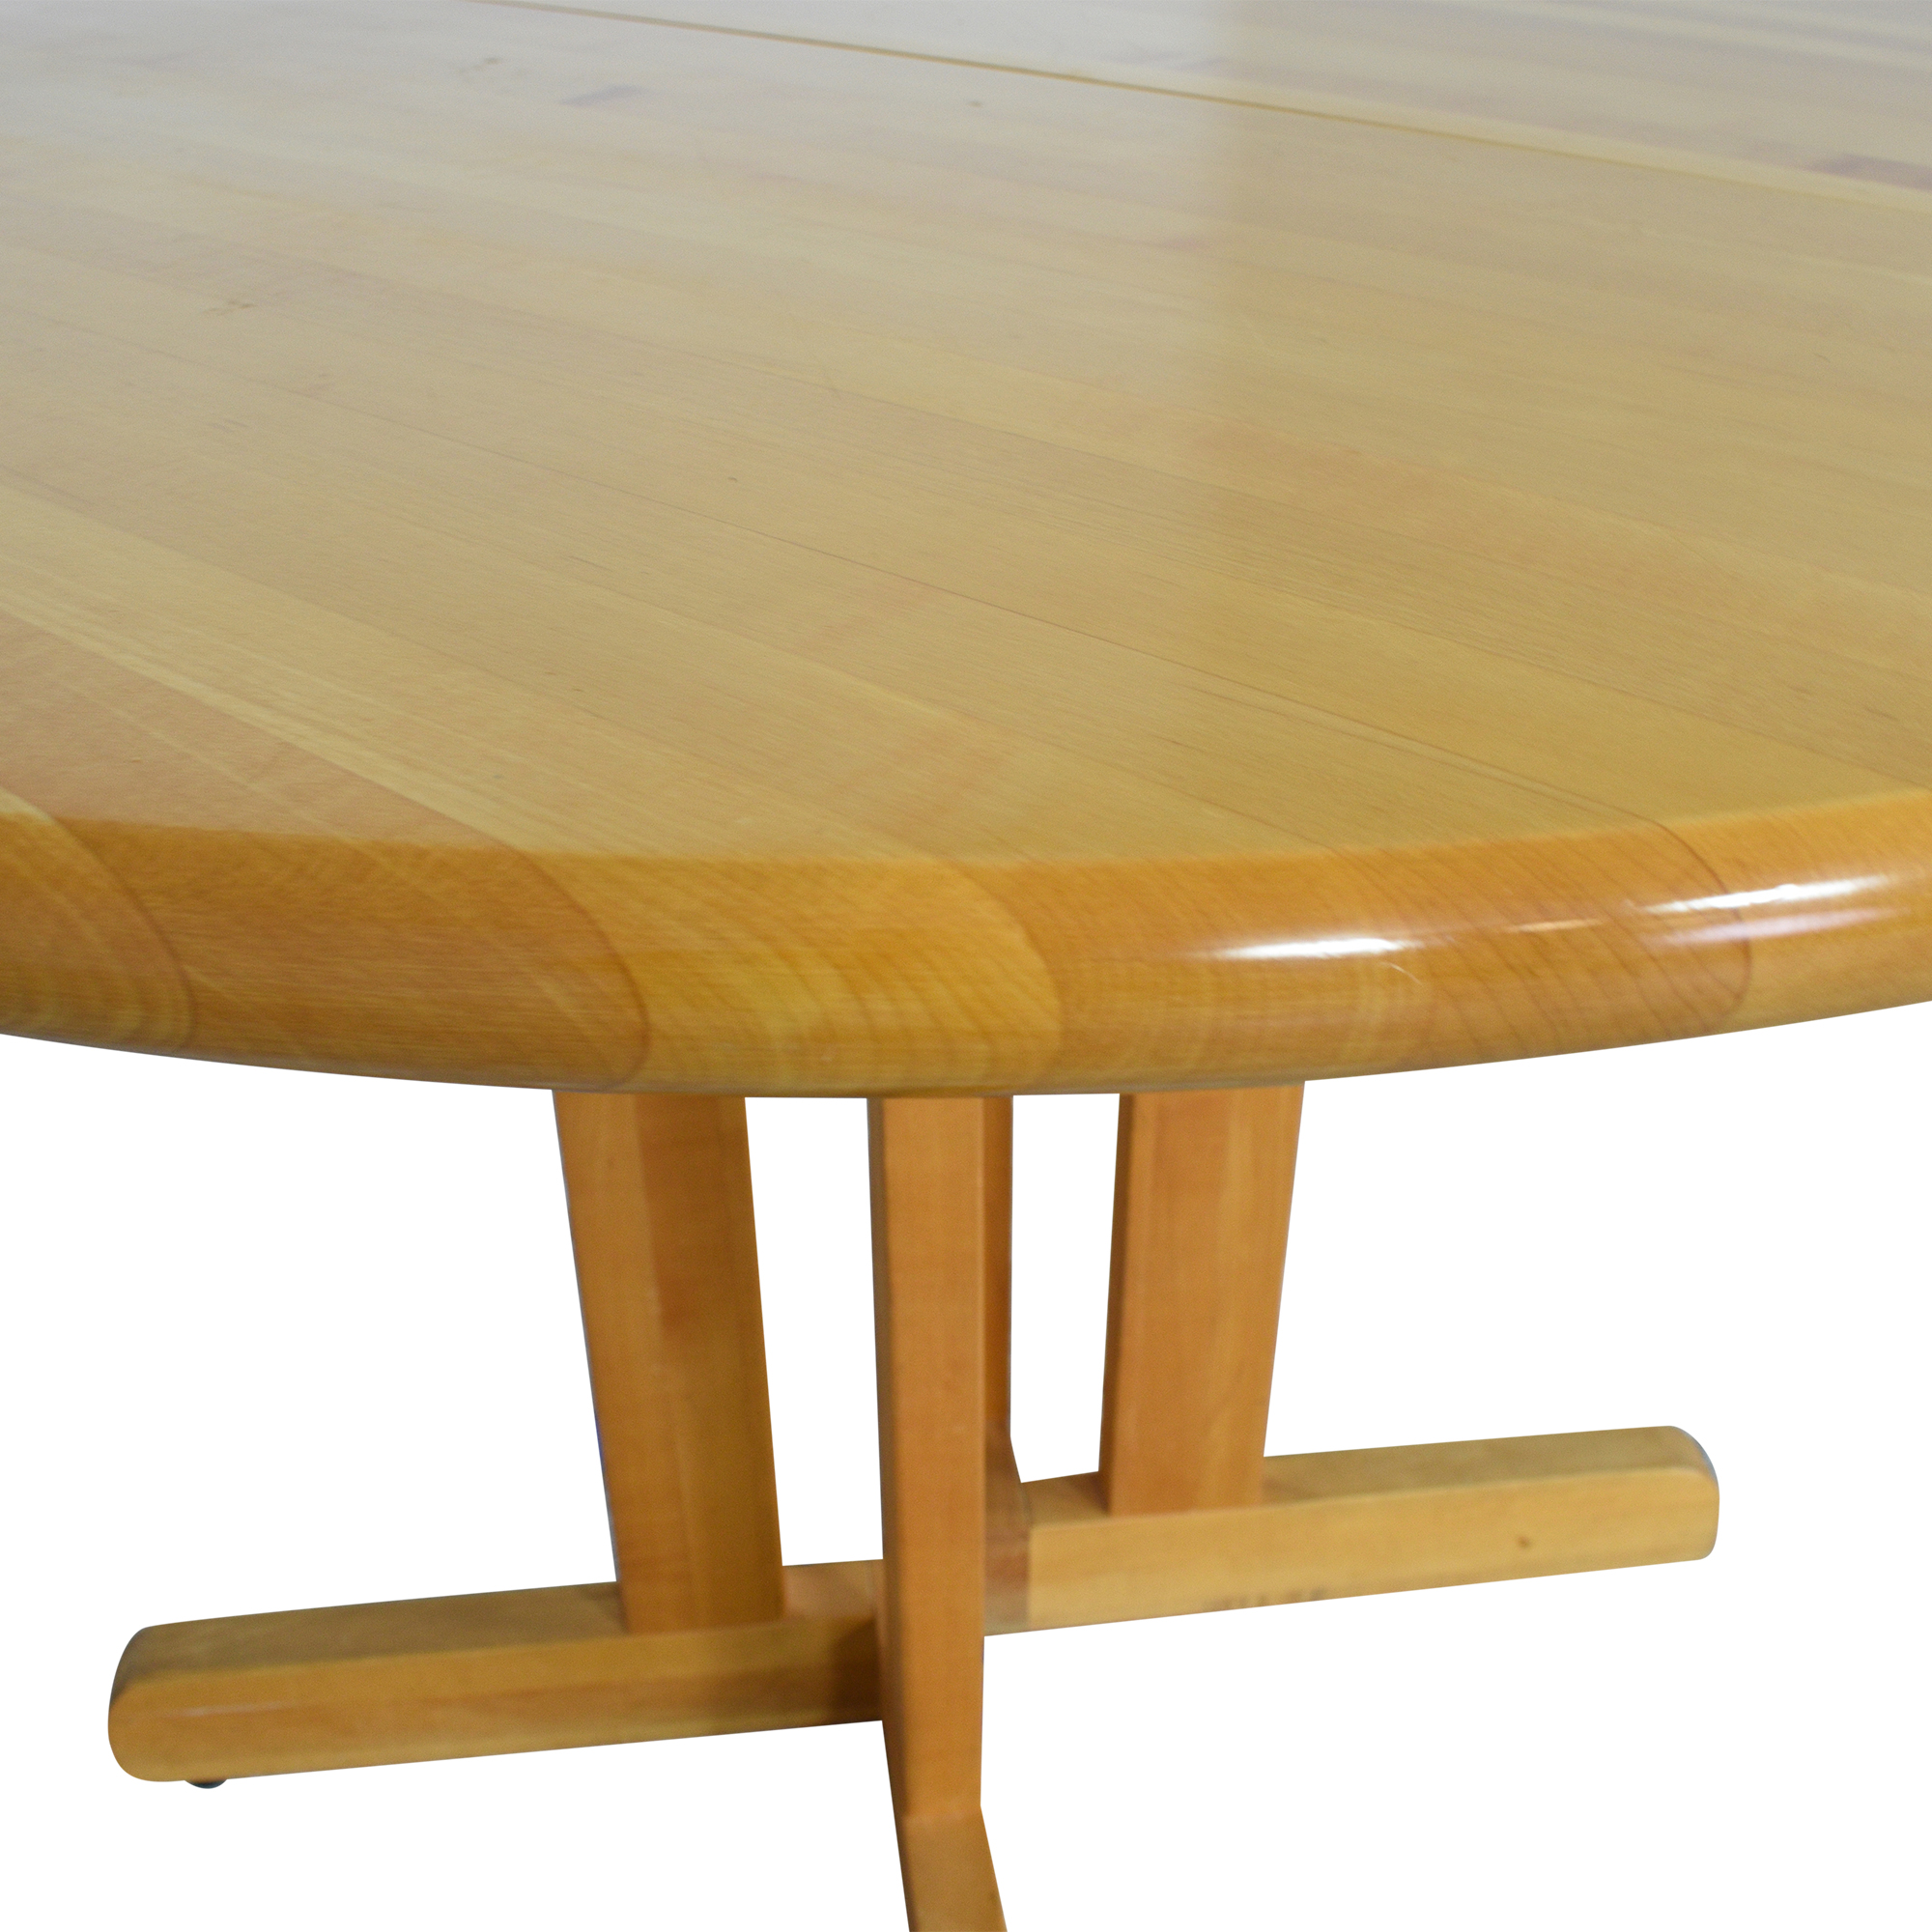 Walter of Wabash Walter of Wabash Round Extendable Dining Table ct